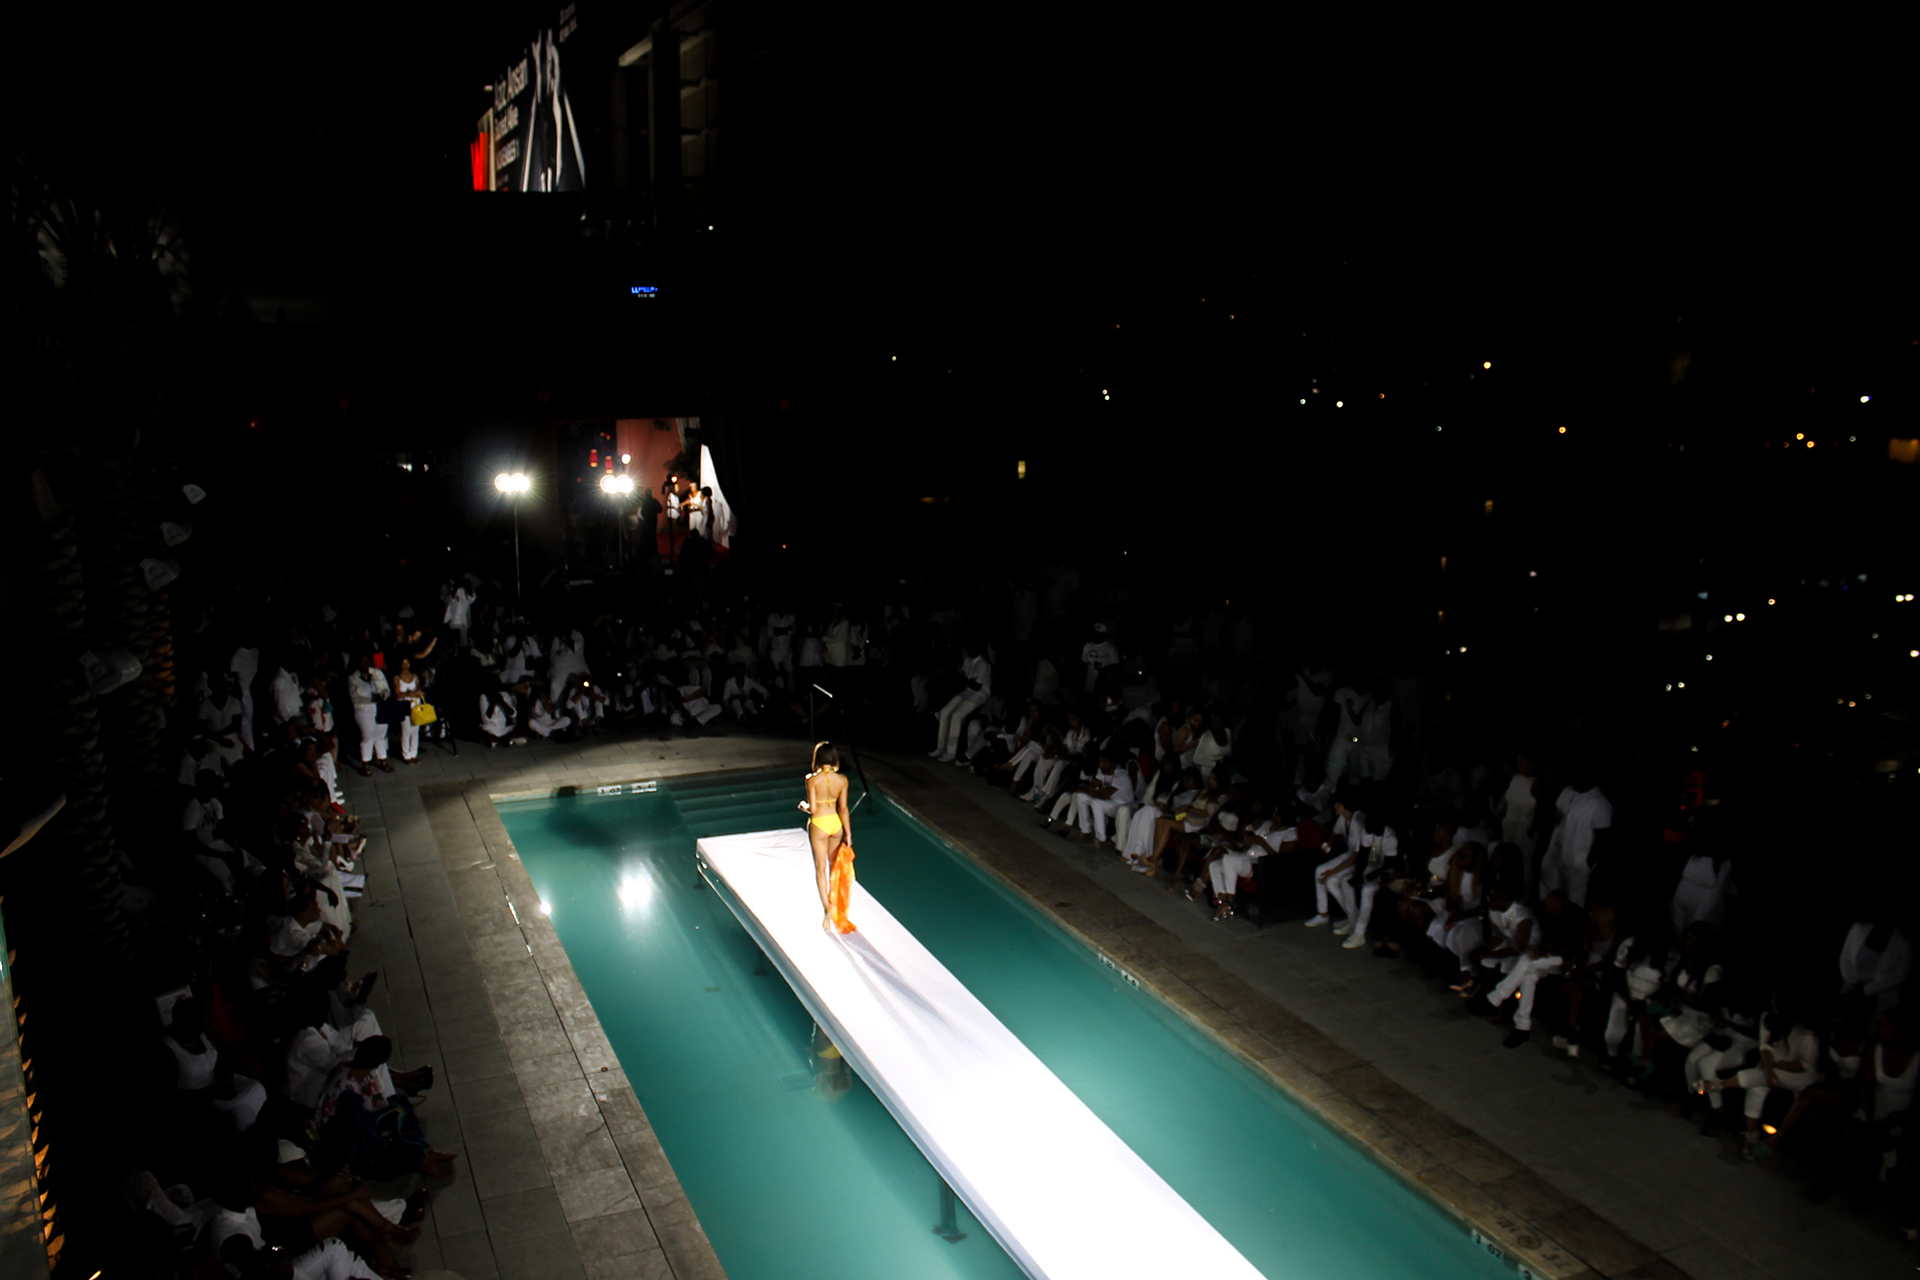 Hive lighting built bright for Pool fashion show